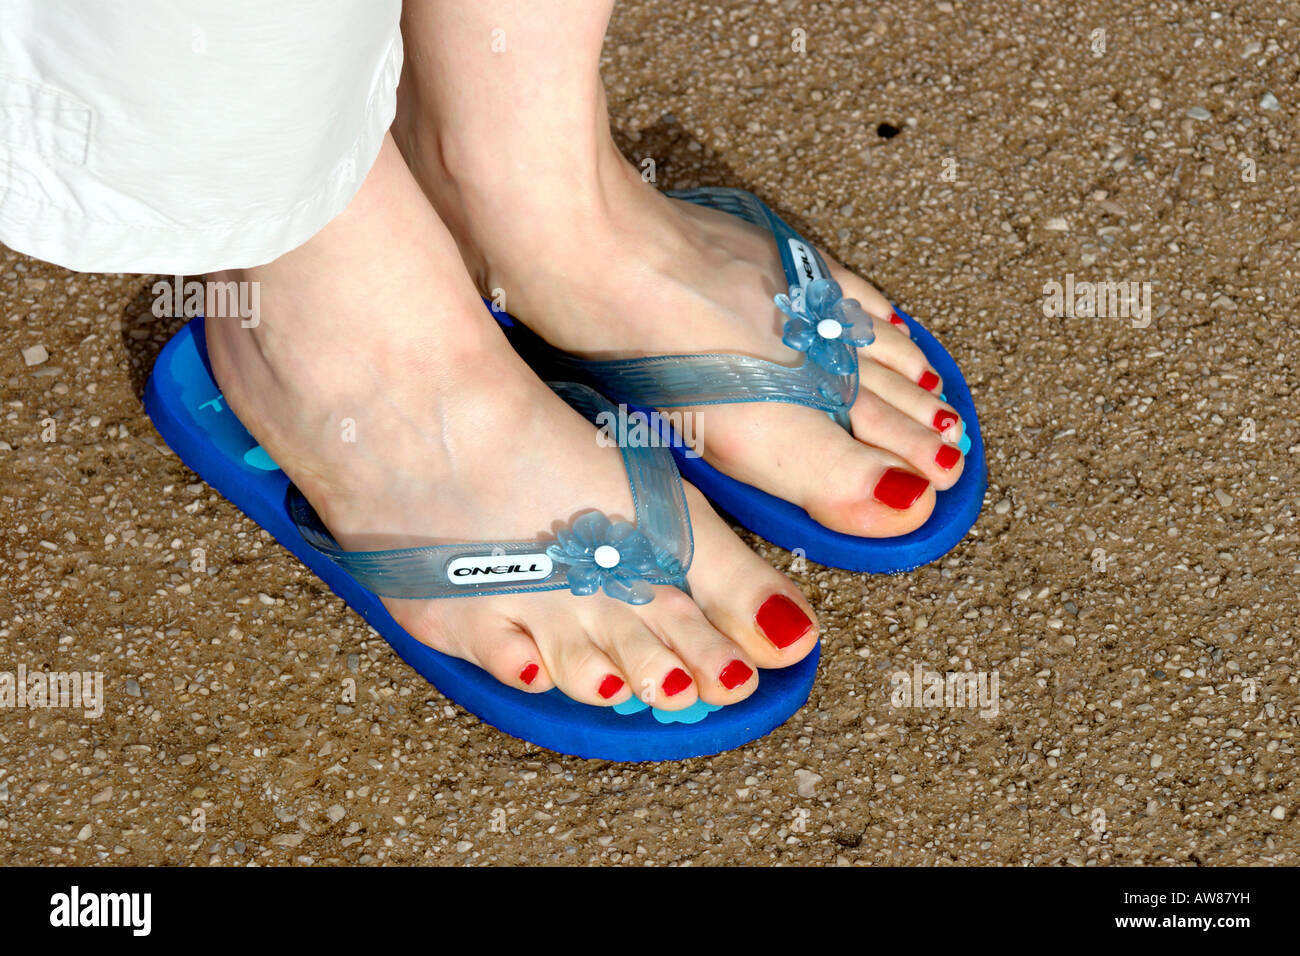 Consider, that painted toenails and flip flops